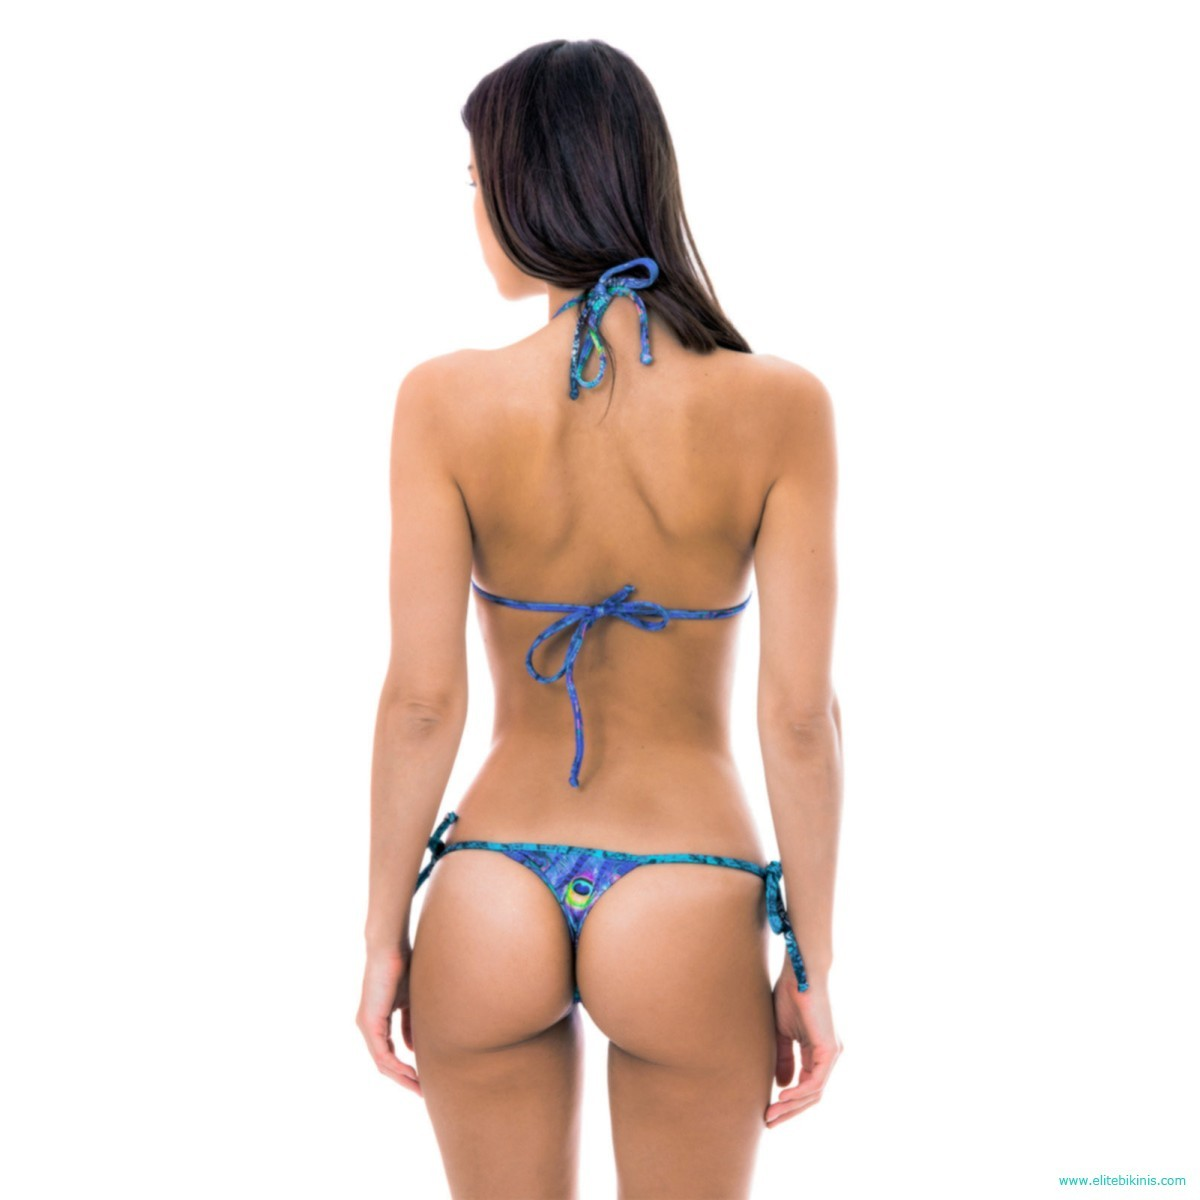 869947c8f93 This blue micro bikini, also known as thong, belongs to the 2018 collection  by the known brand, Rio de Sol, and it's made in Brazil. It has a triangle  top ...